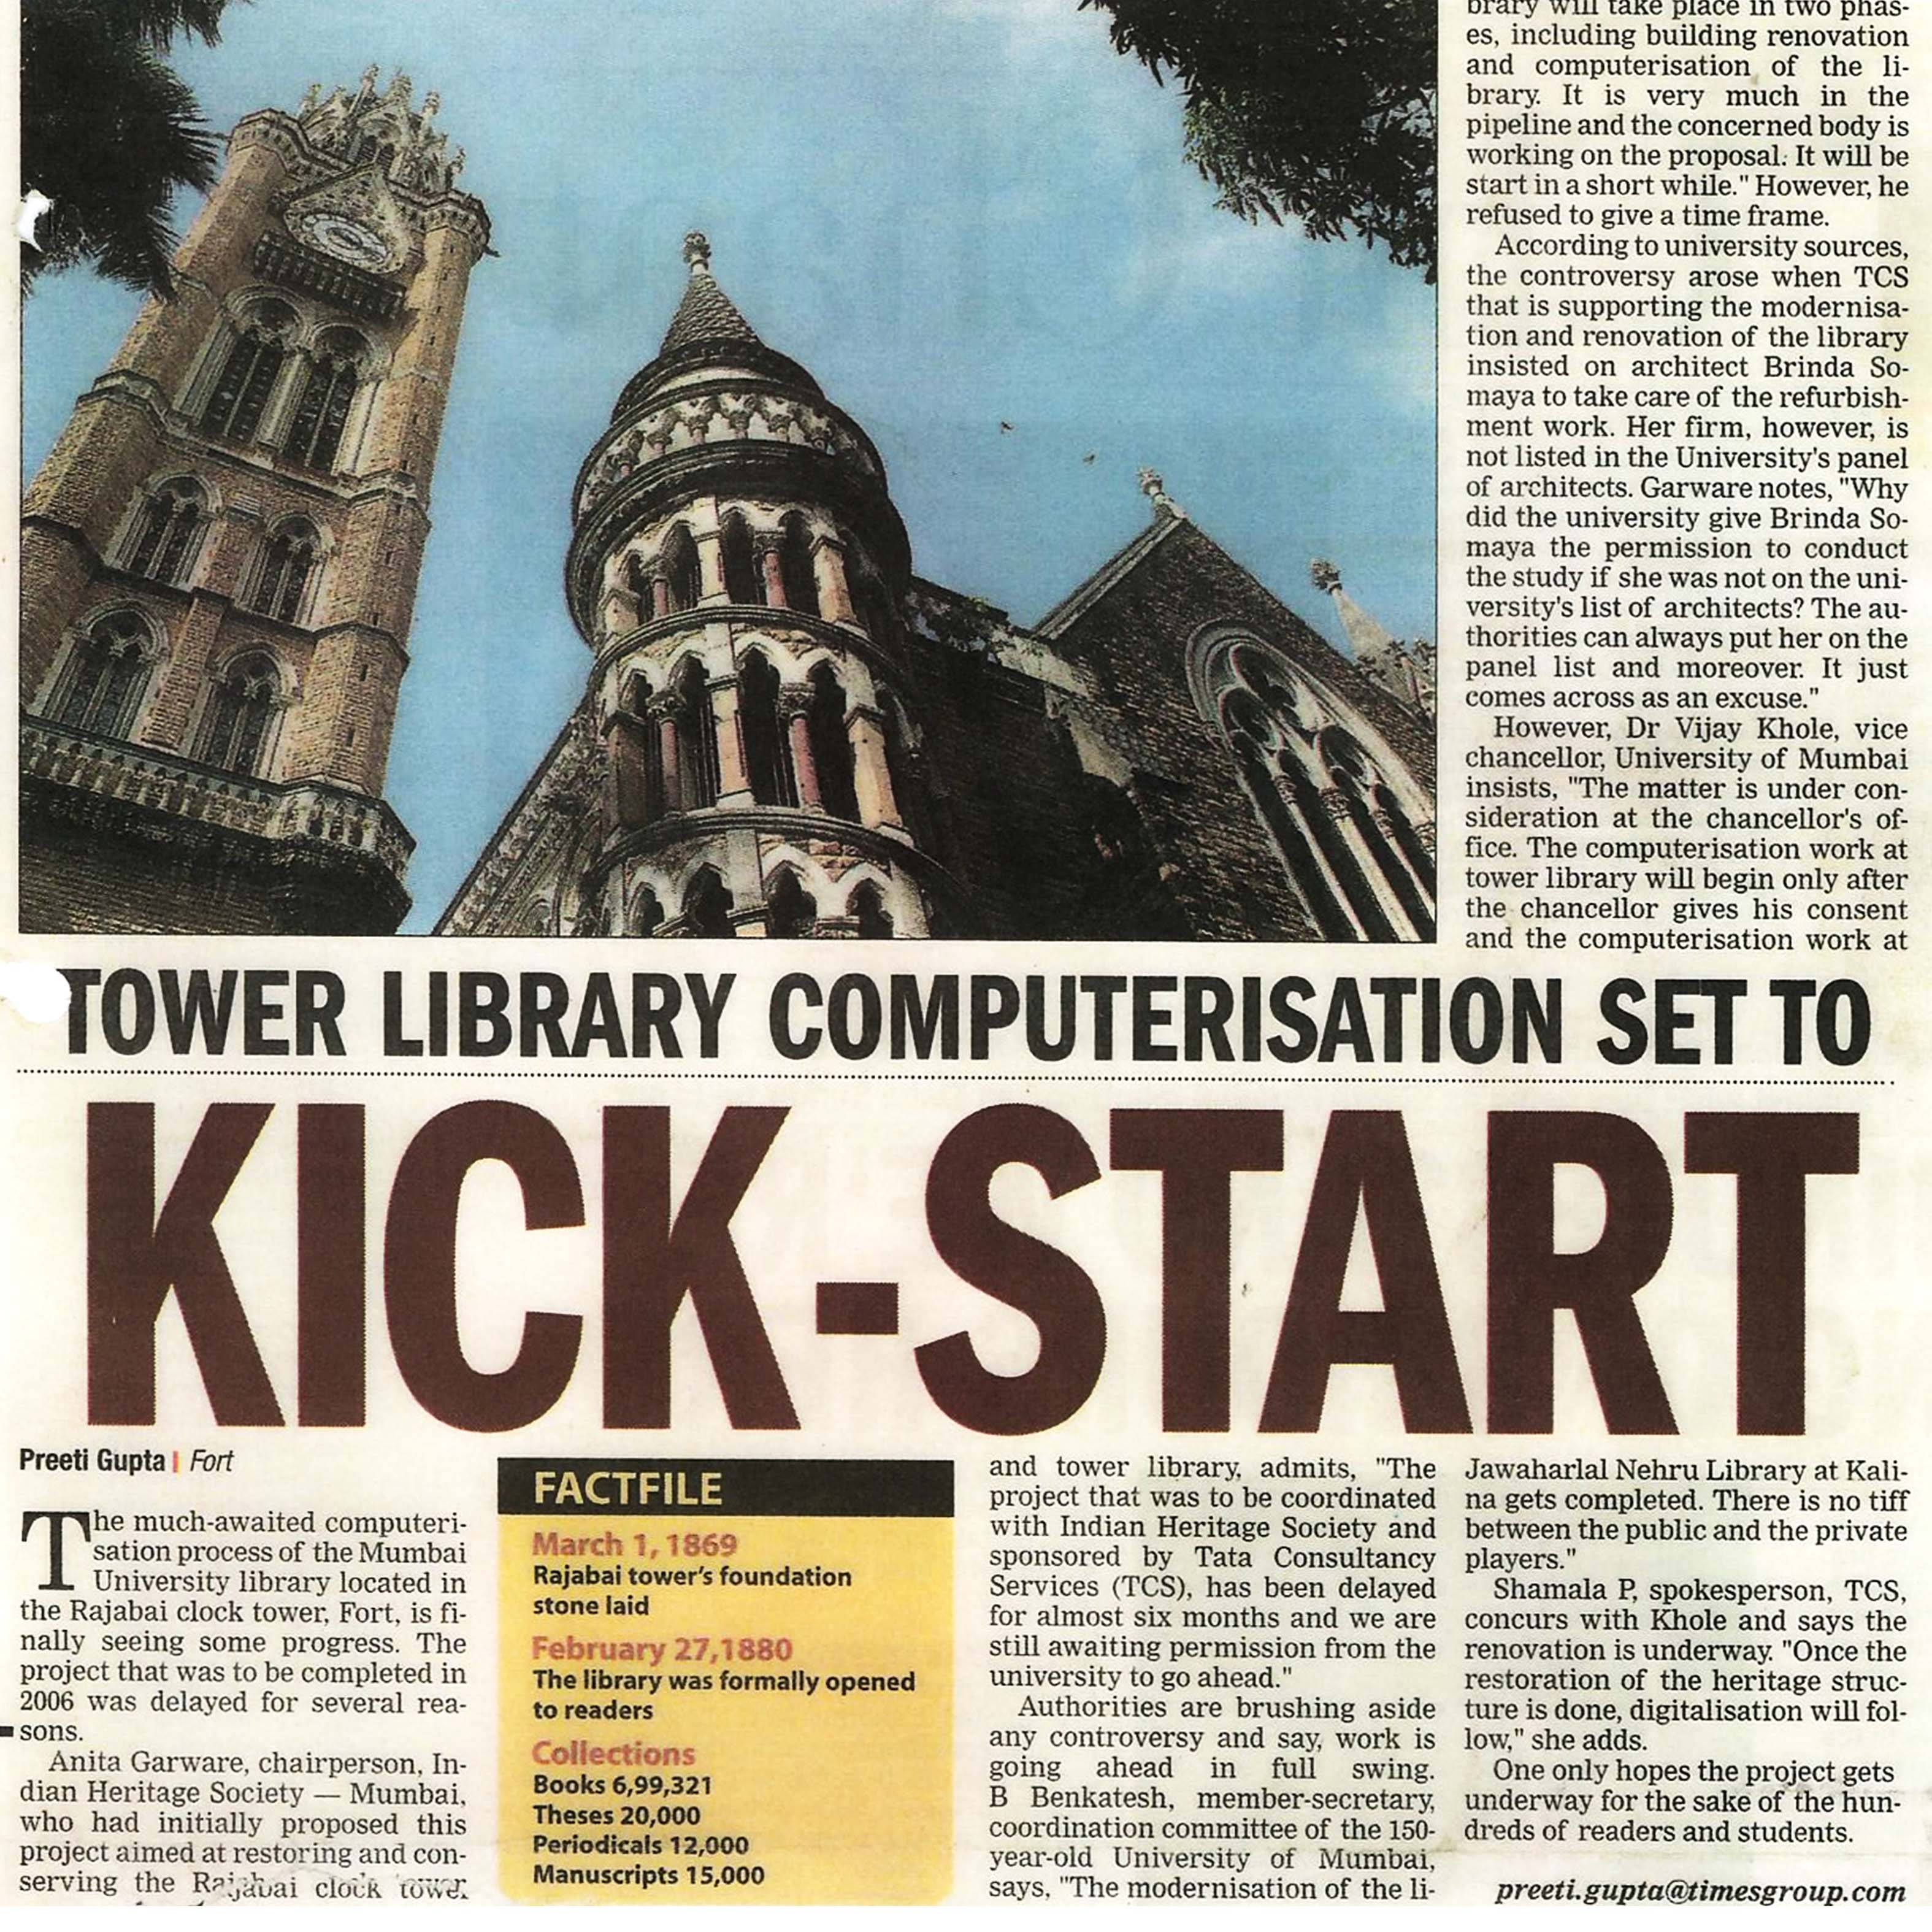 Bombay Times - Tower Library Computerisation set to Kickstart